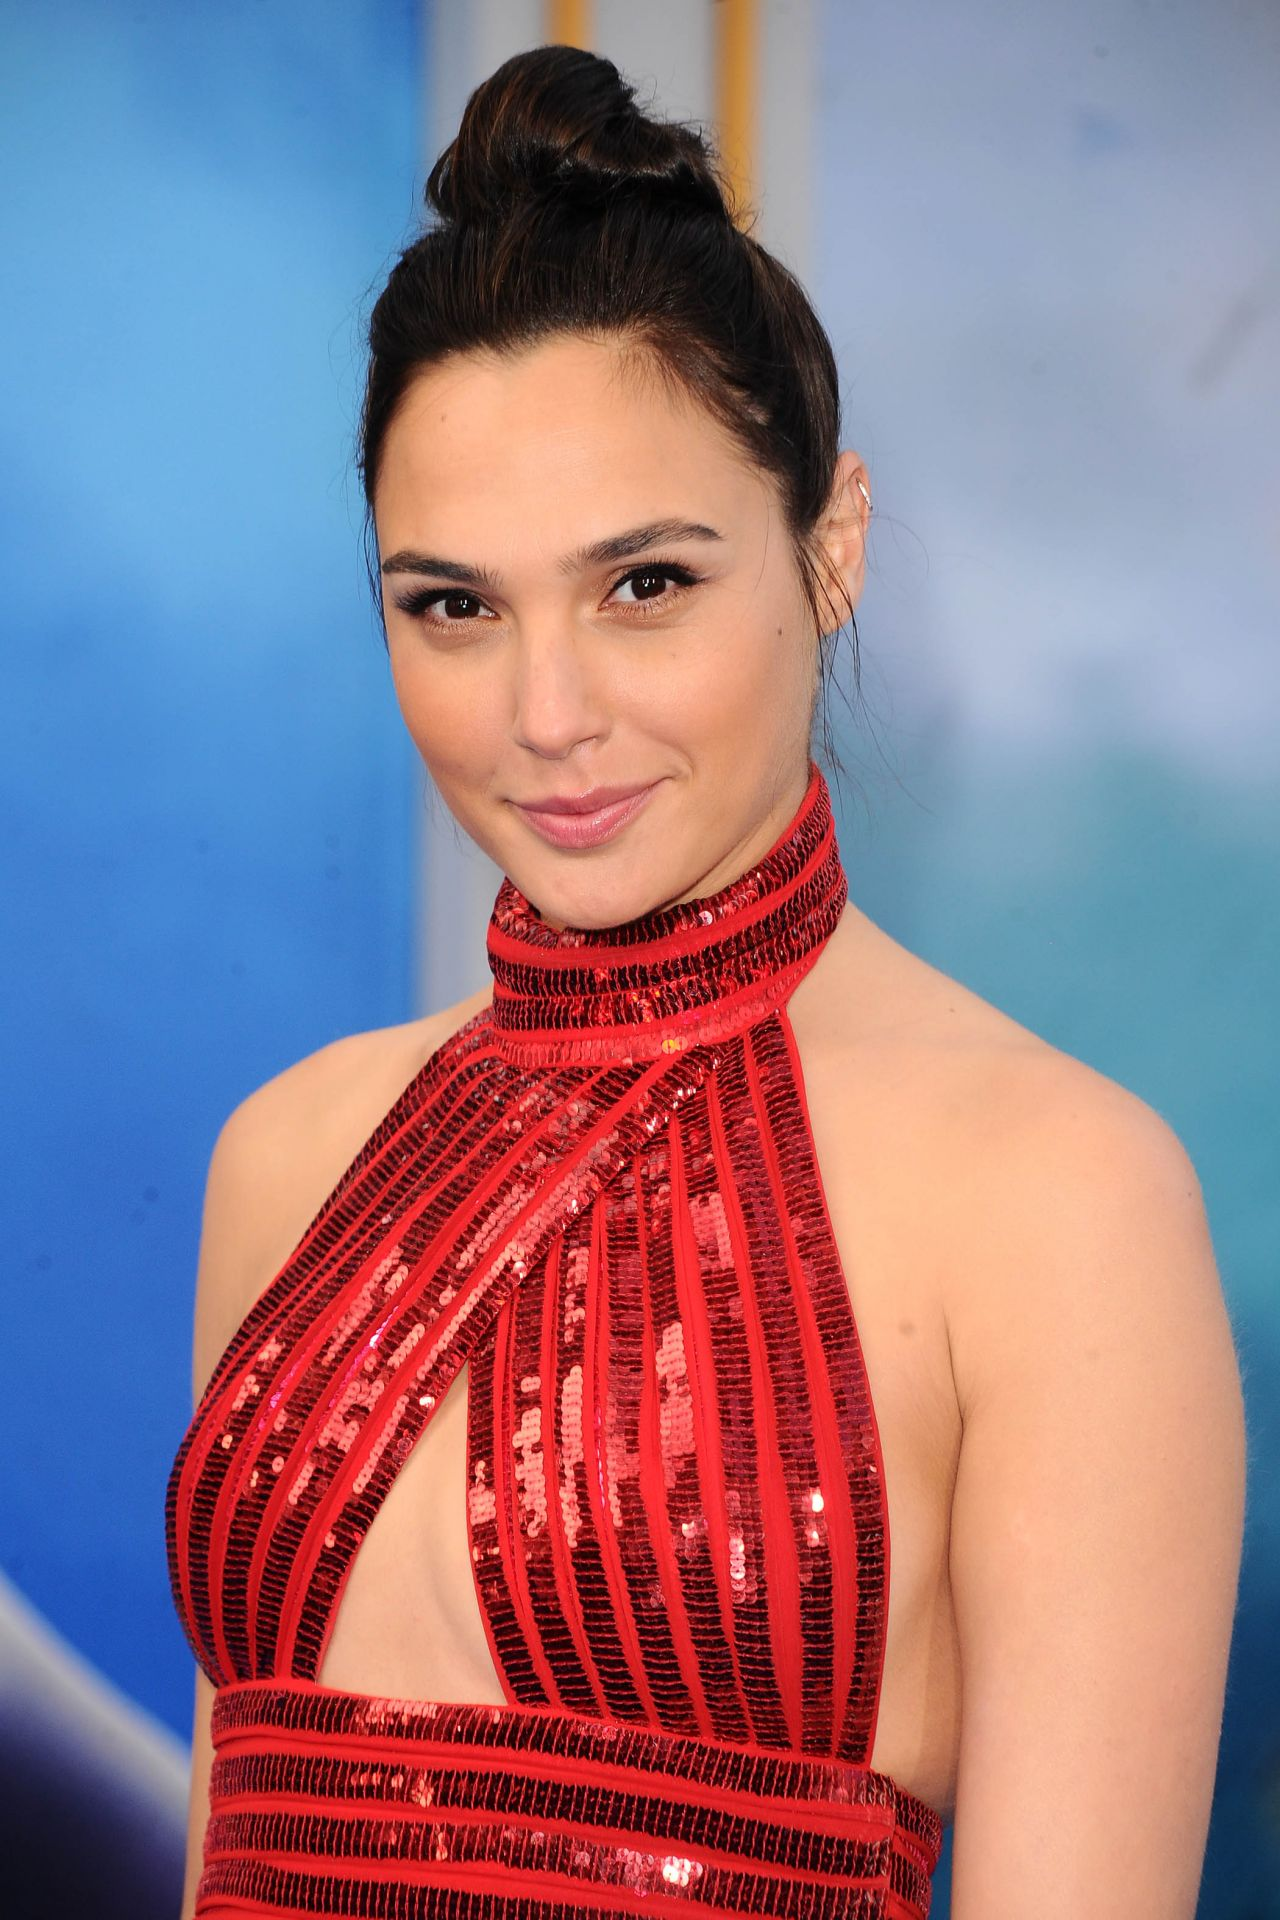 gal gadot - photo #7